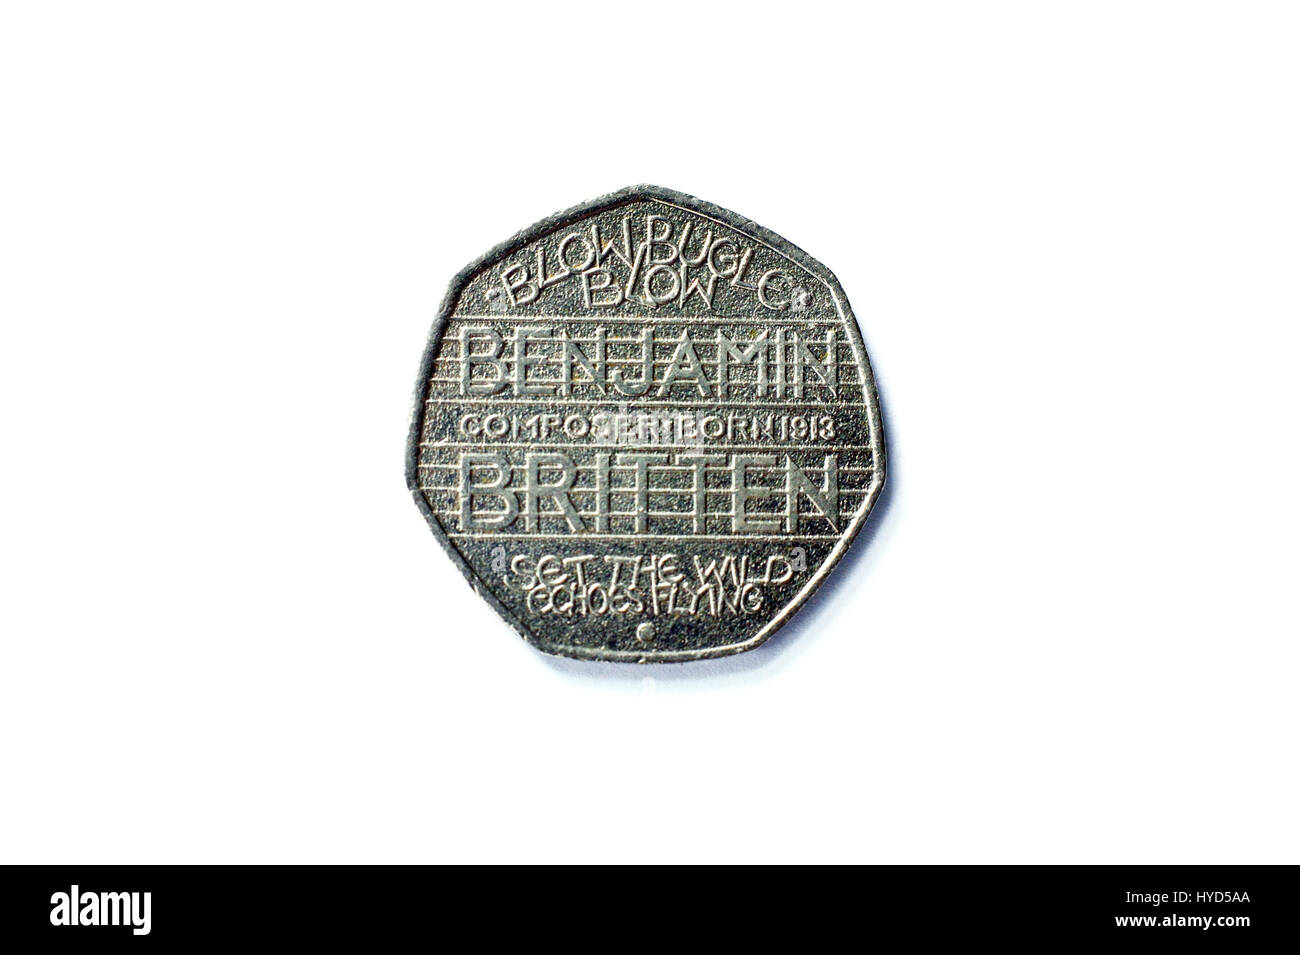 Unusual celebration 50 pence UK coin - Stock Image